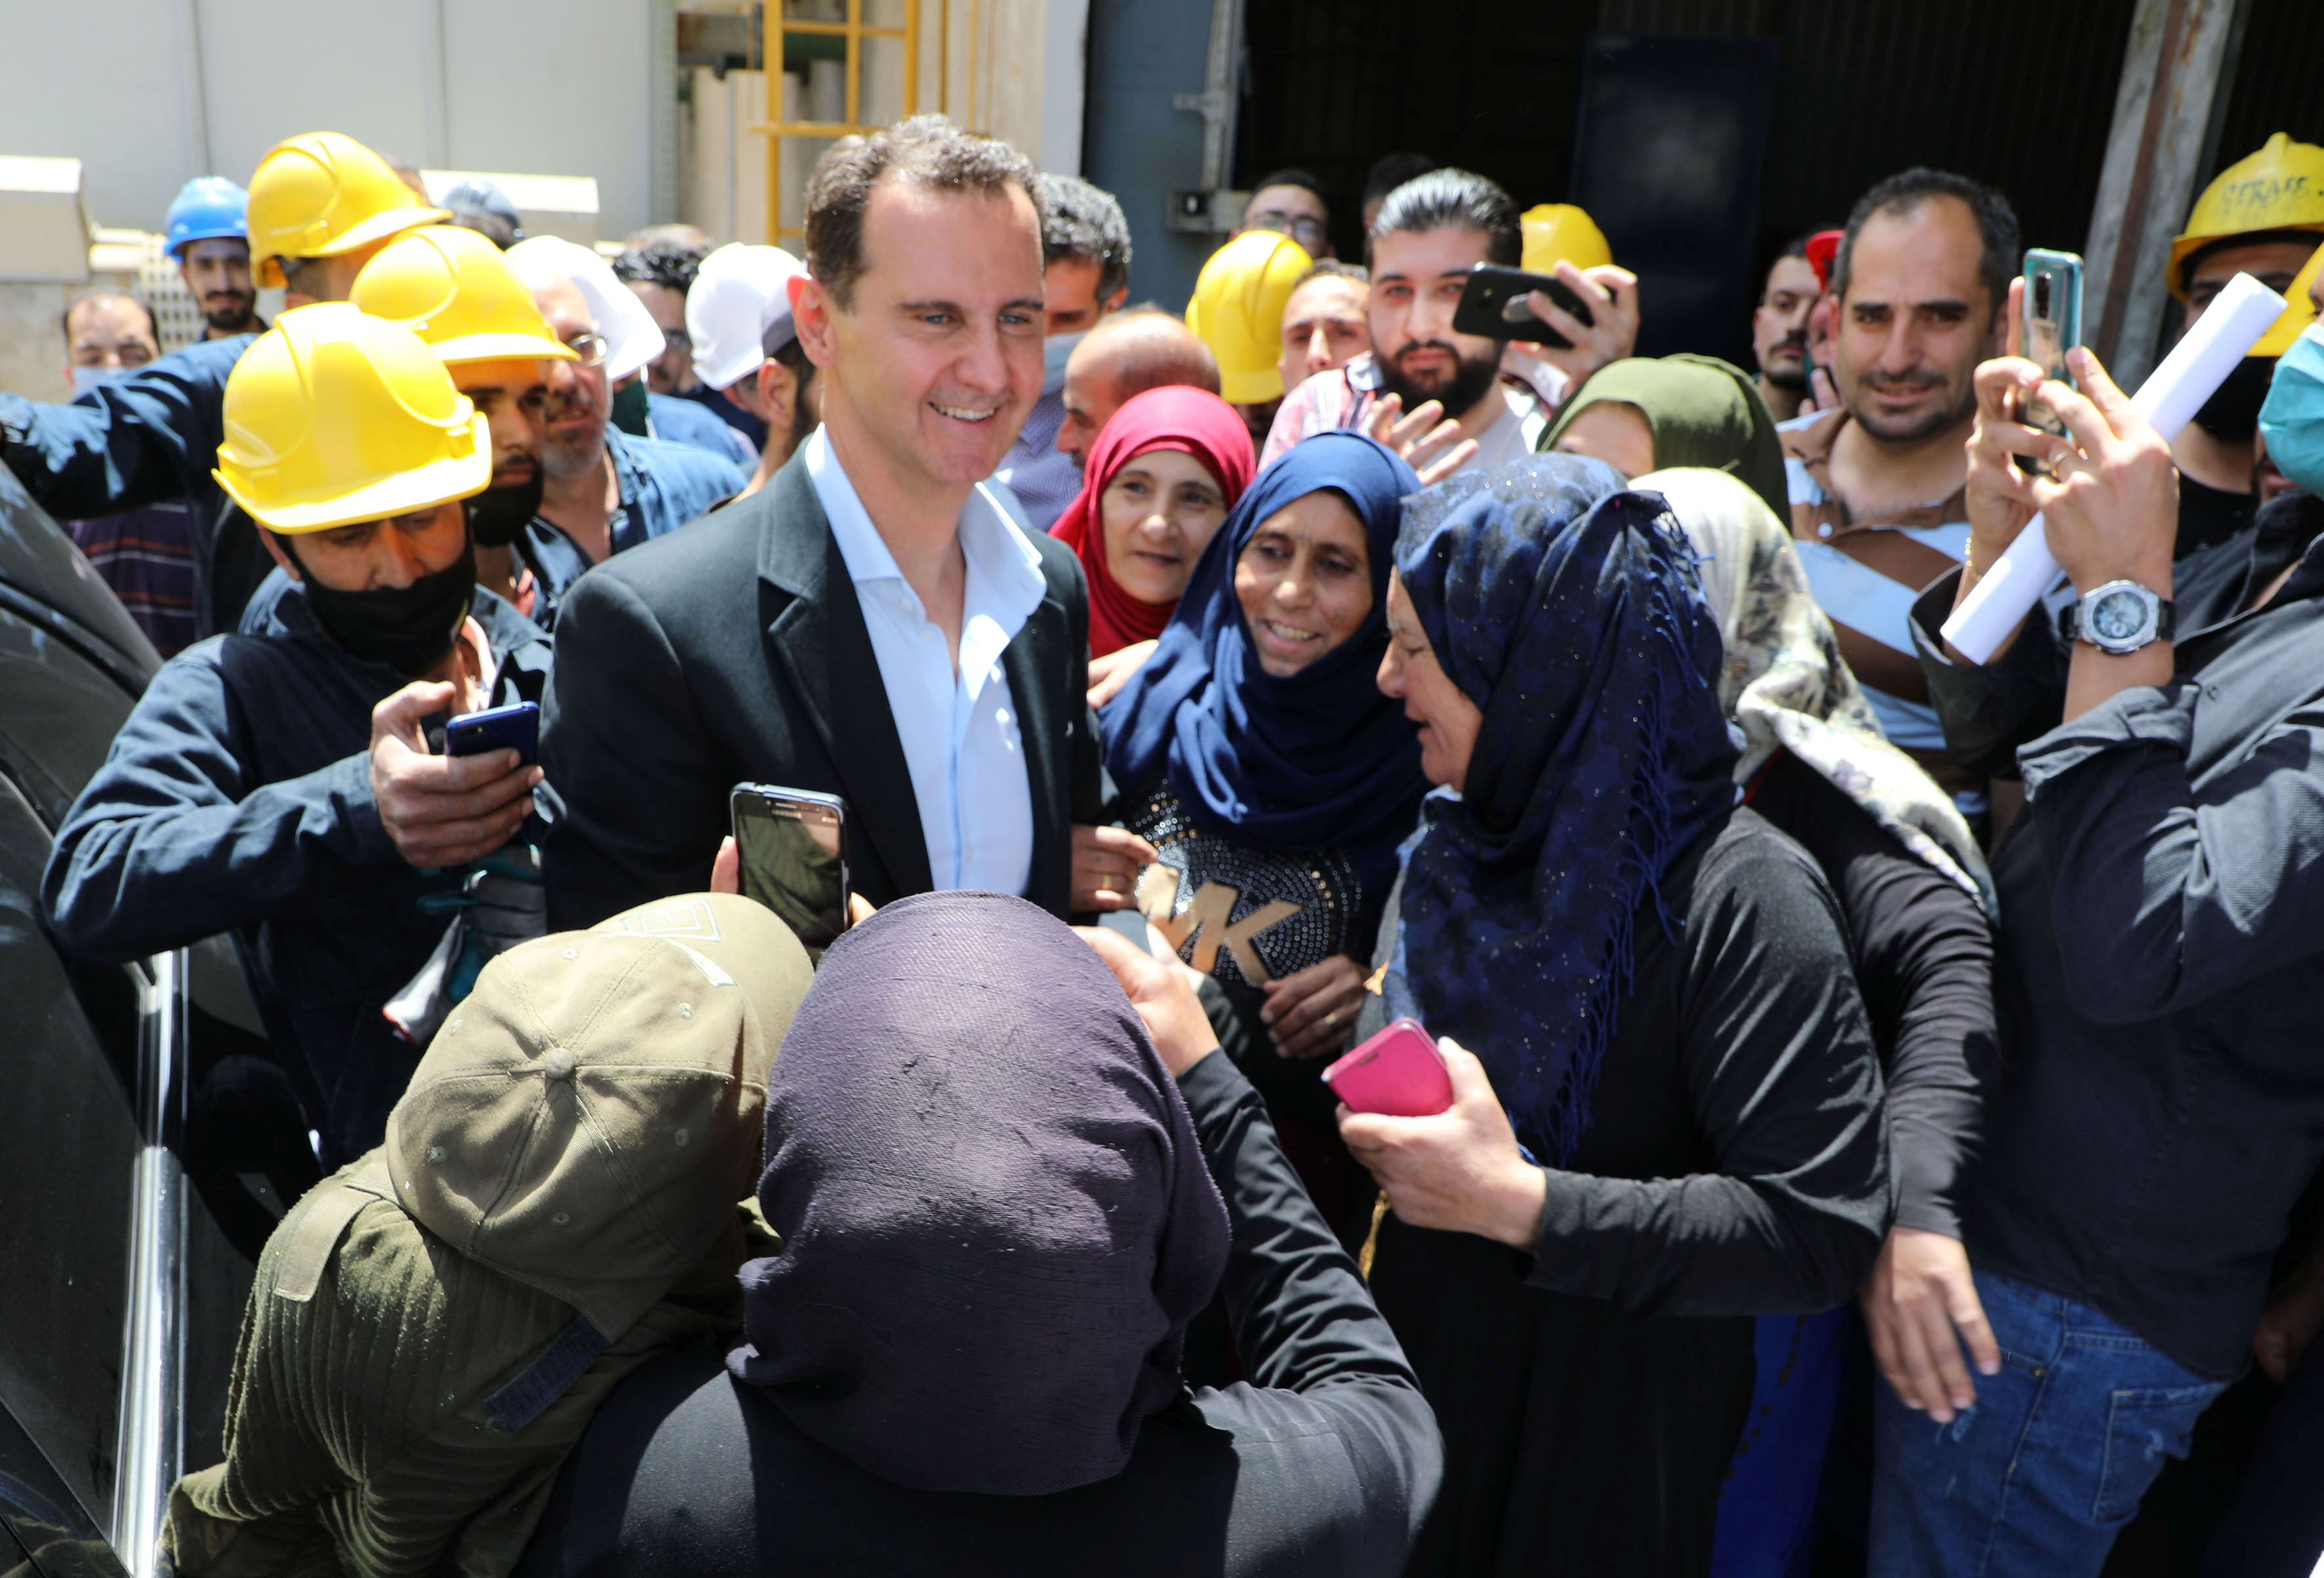 Syrian President Bashar al-Assad meets with people during his visit to some factories and facilities in the industrial city of Hassia in Homs, Syria in this handout picture released on May 3, 2021. SANA/Handout via REUTERS